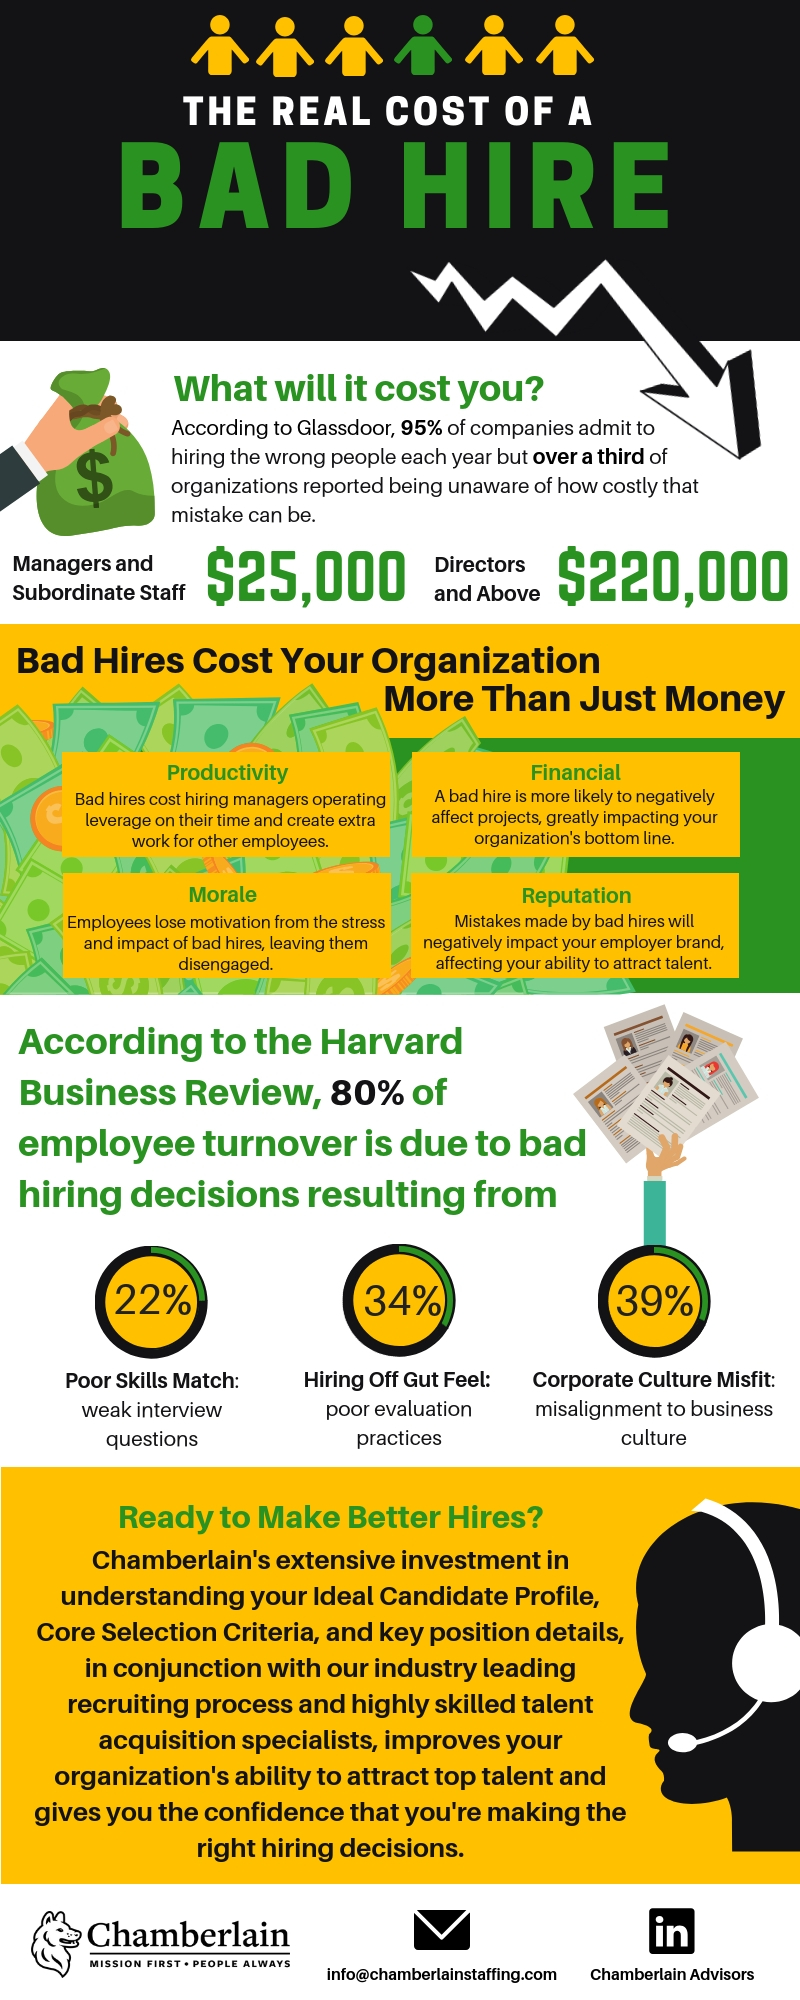 The Real Cost of a Bad Hire